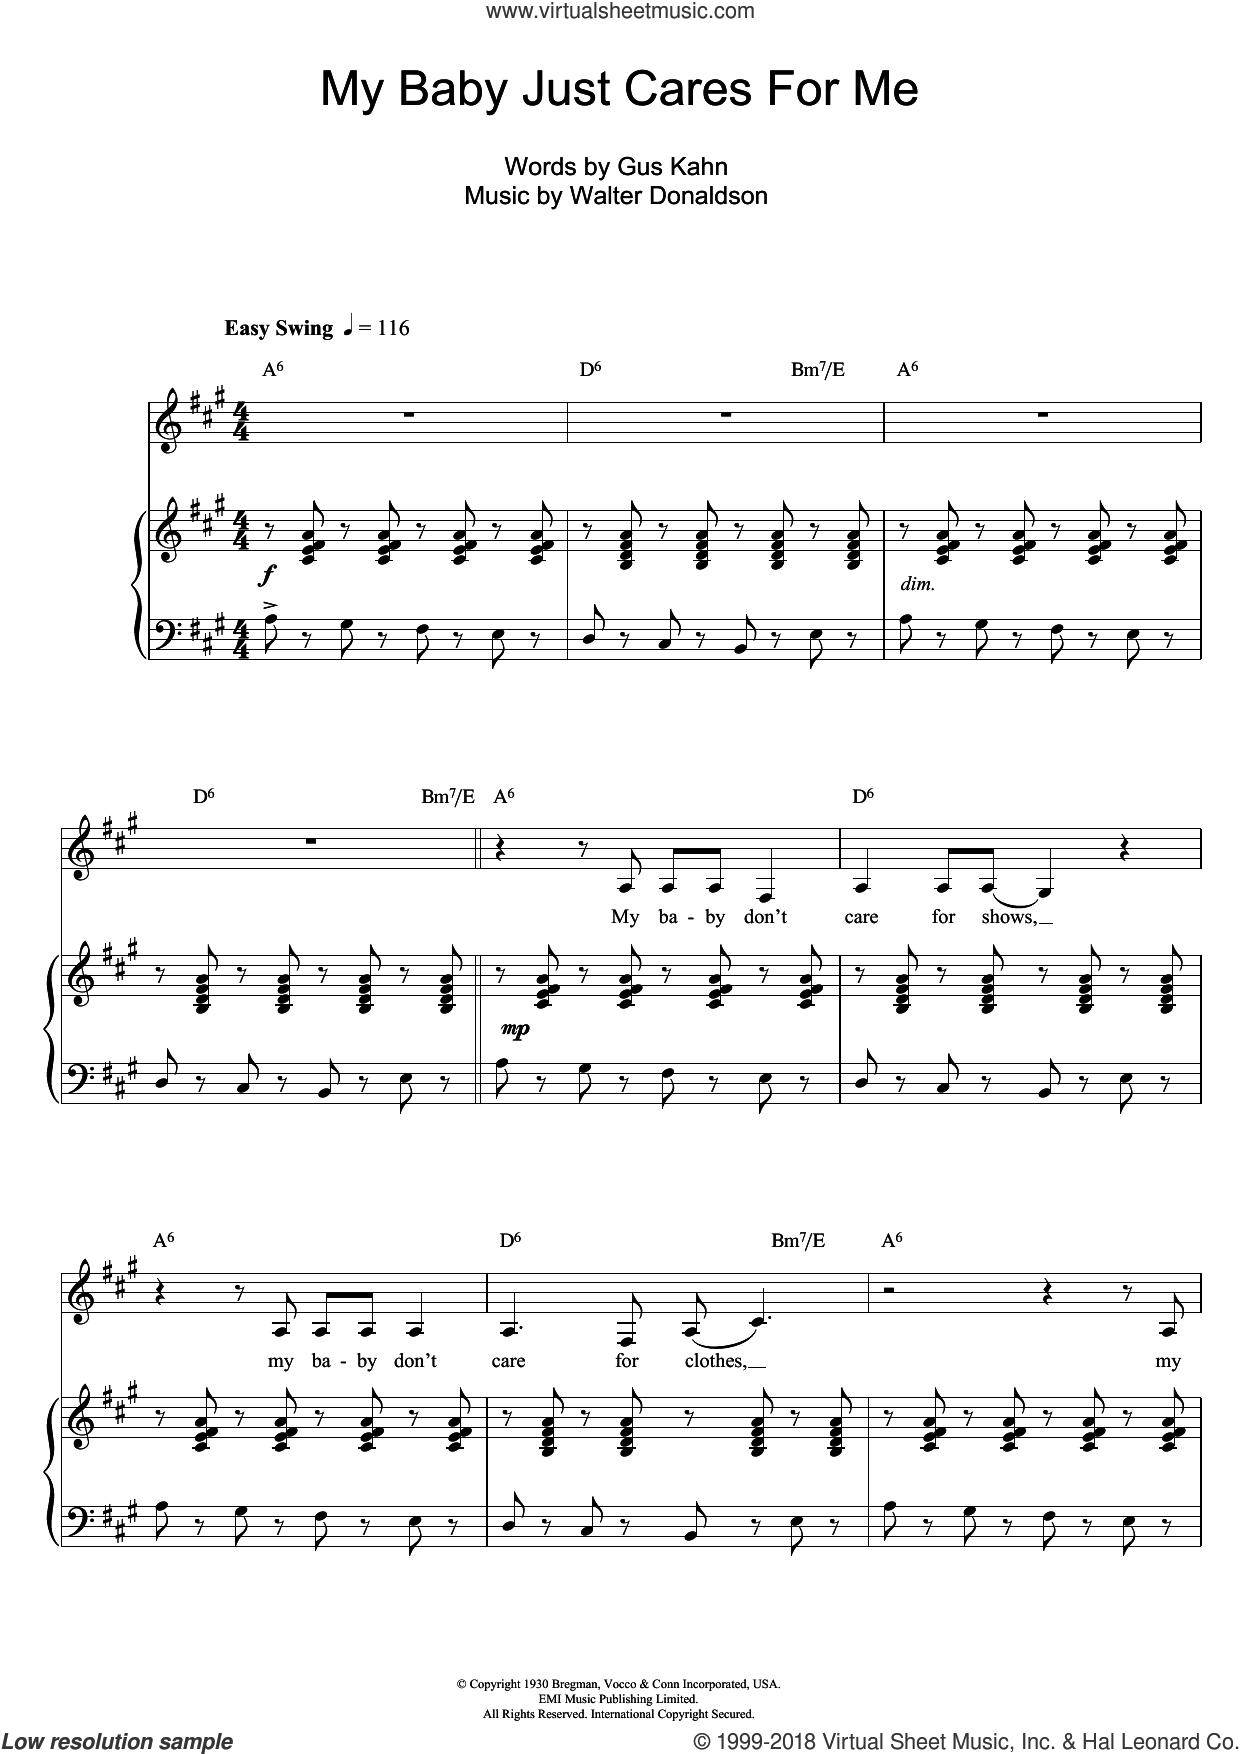 My Baby Just Cares For Me sheet music for voice, piano or guitar by Walter Donaldson